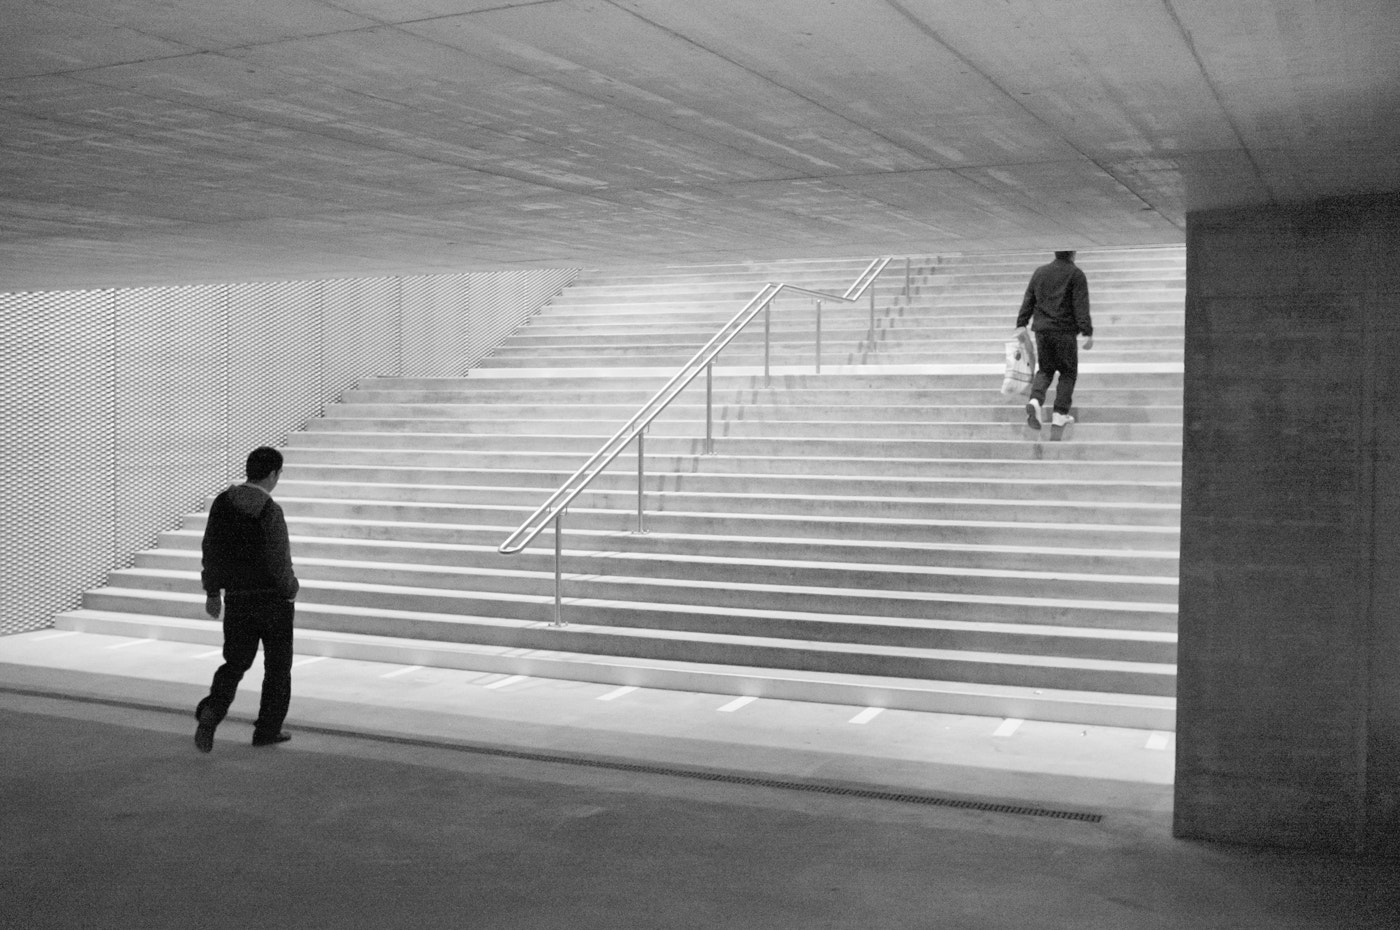 Photograph two men on stairs by Emanuel Ganz on 500px